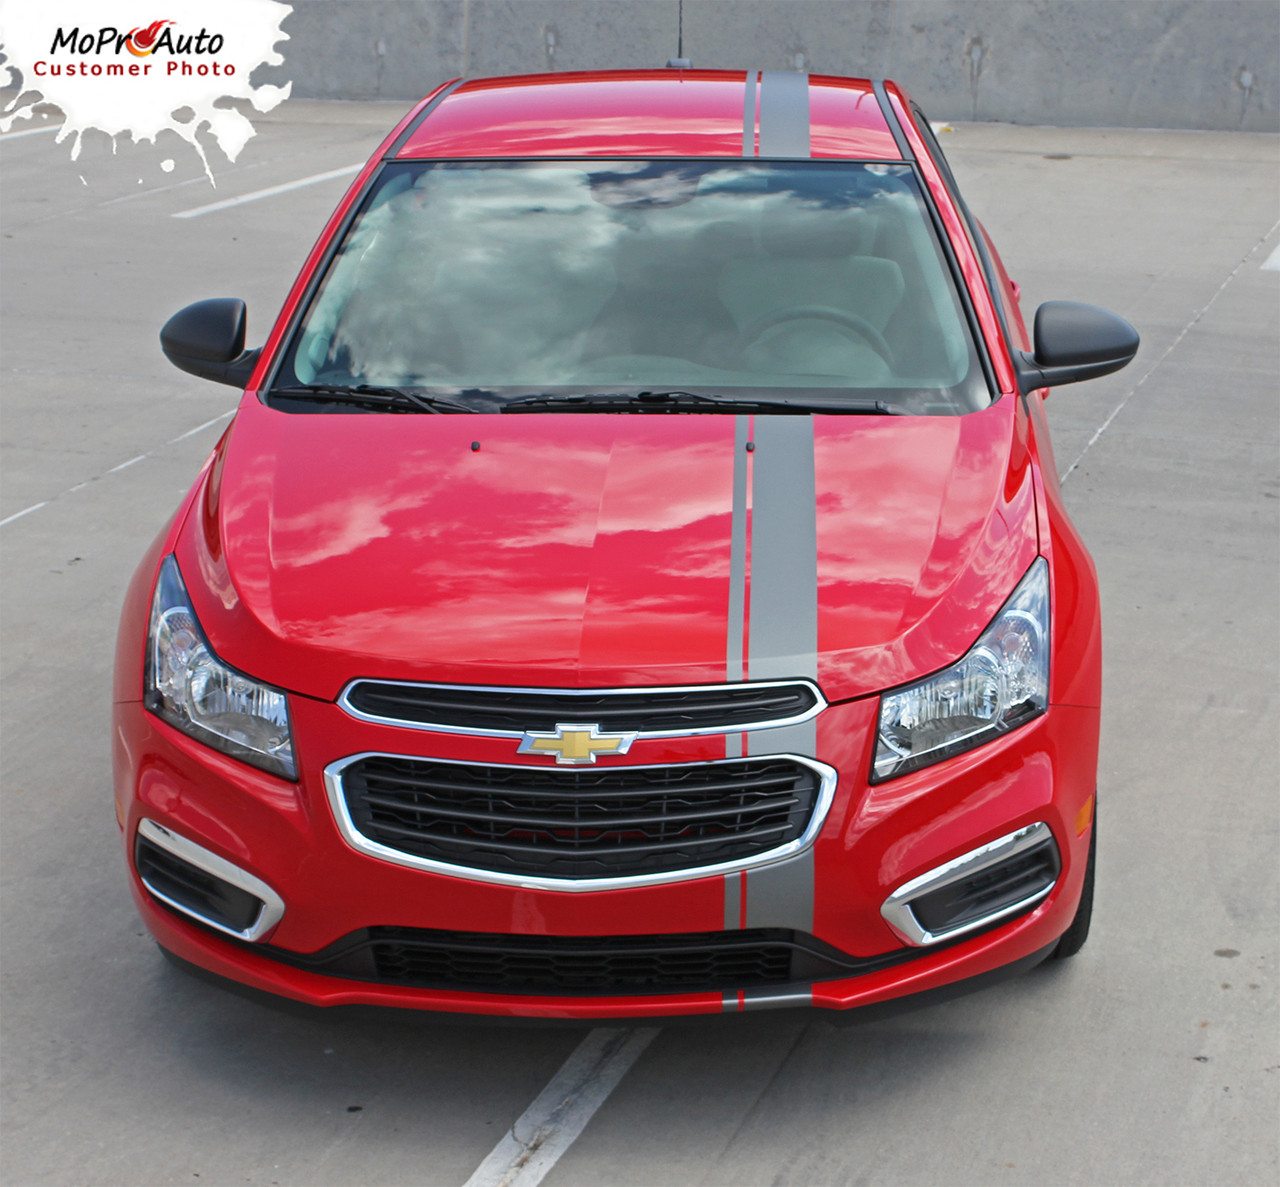 E Rally 15 Chevy Cruze Euro Offset Hood Racing Stripes 2015 Station Wagon Vinyl Graphics And Decals